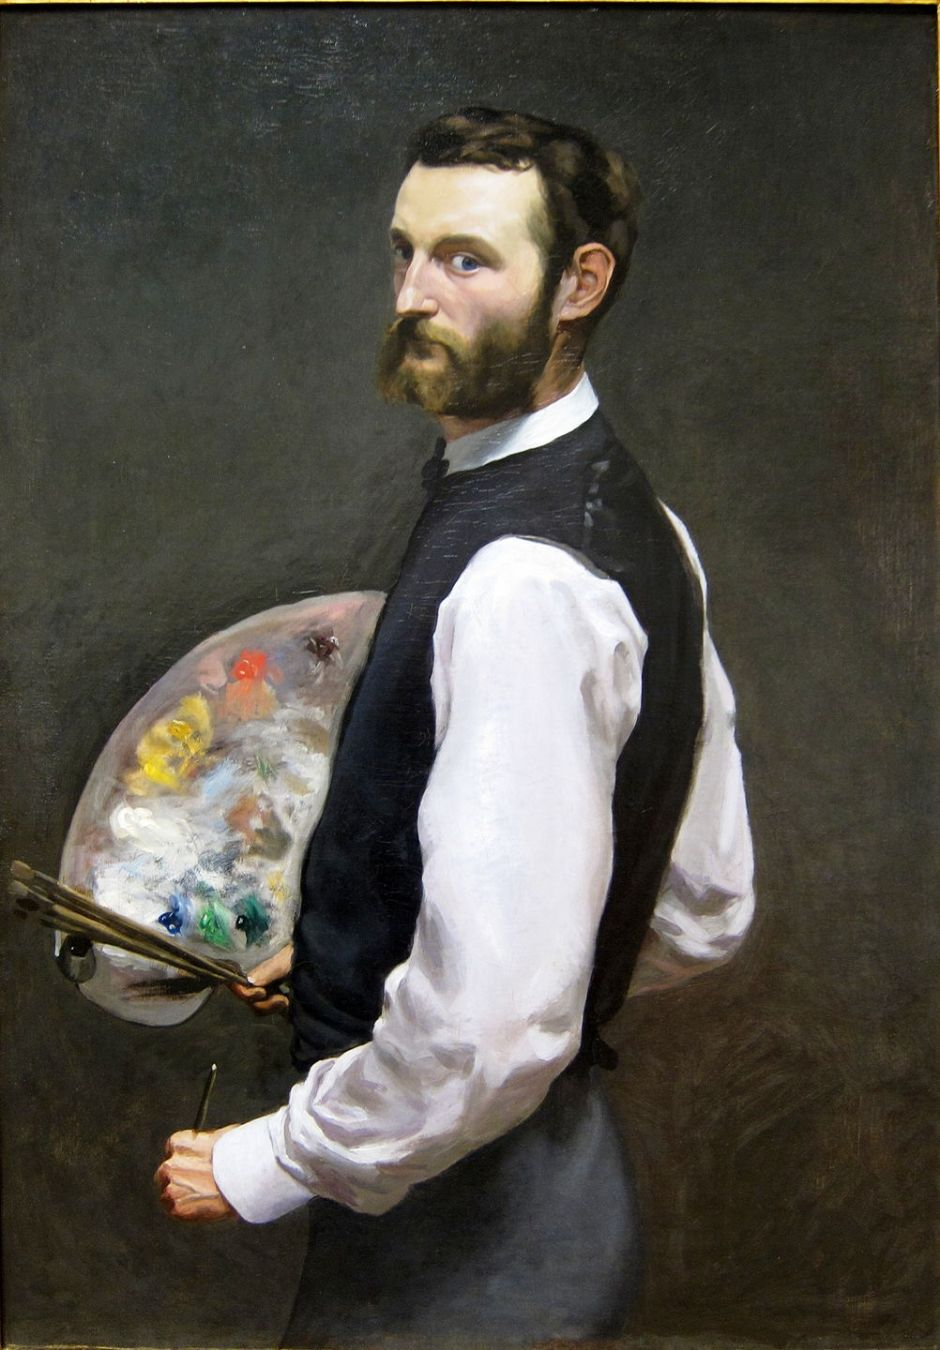 bazilleselfportrait